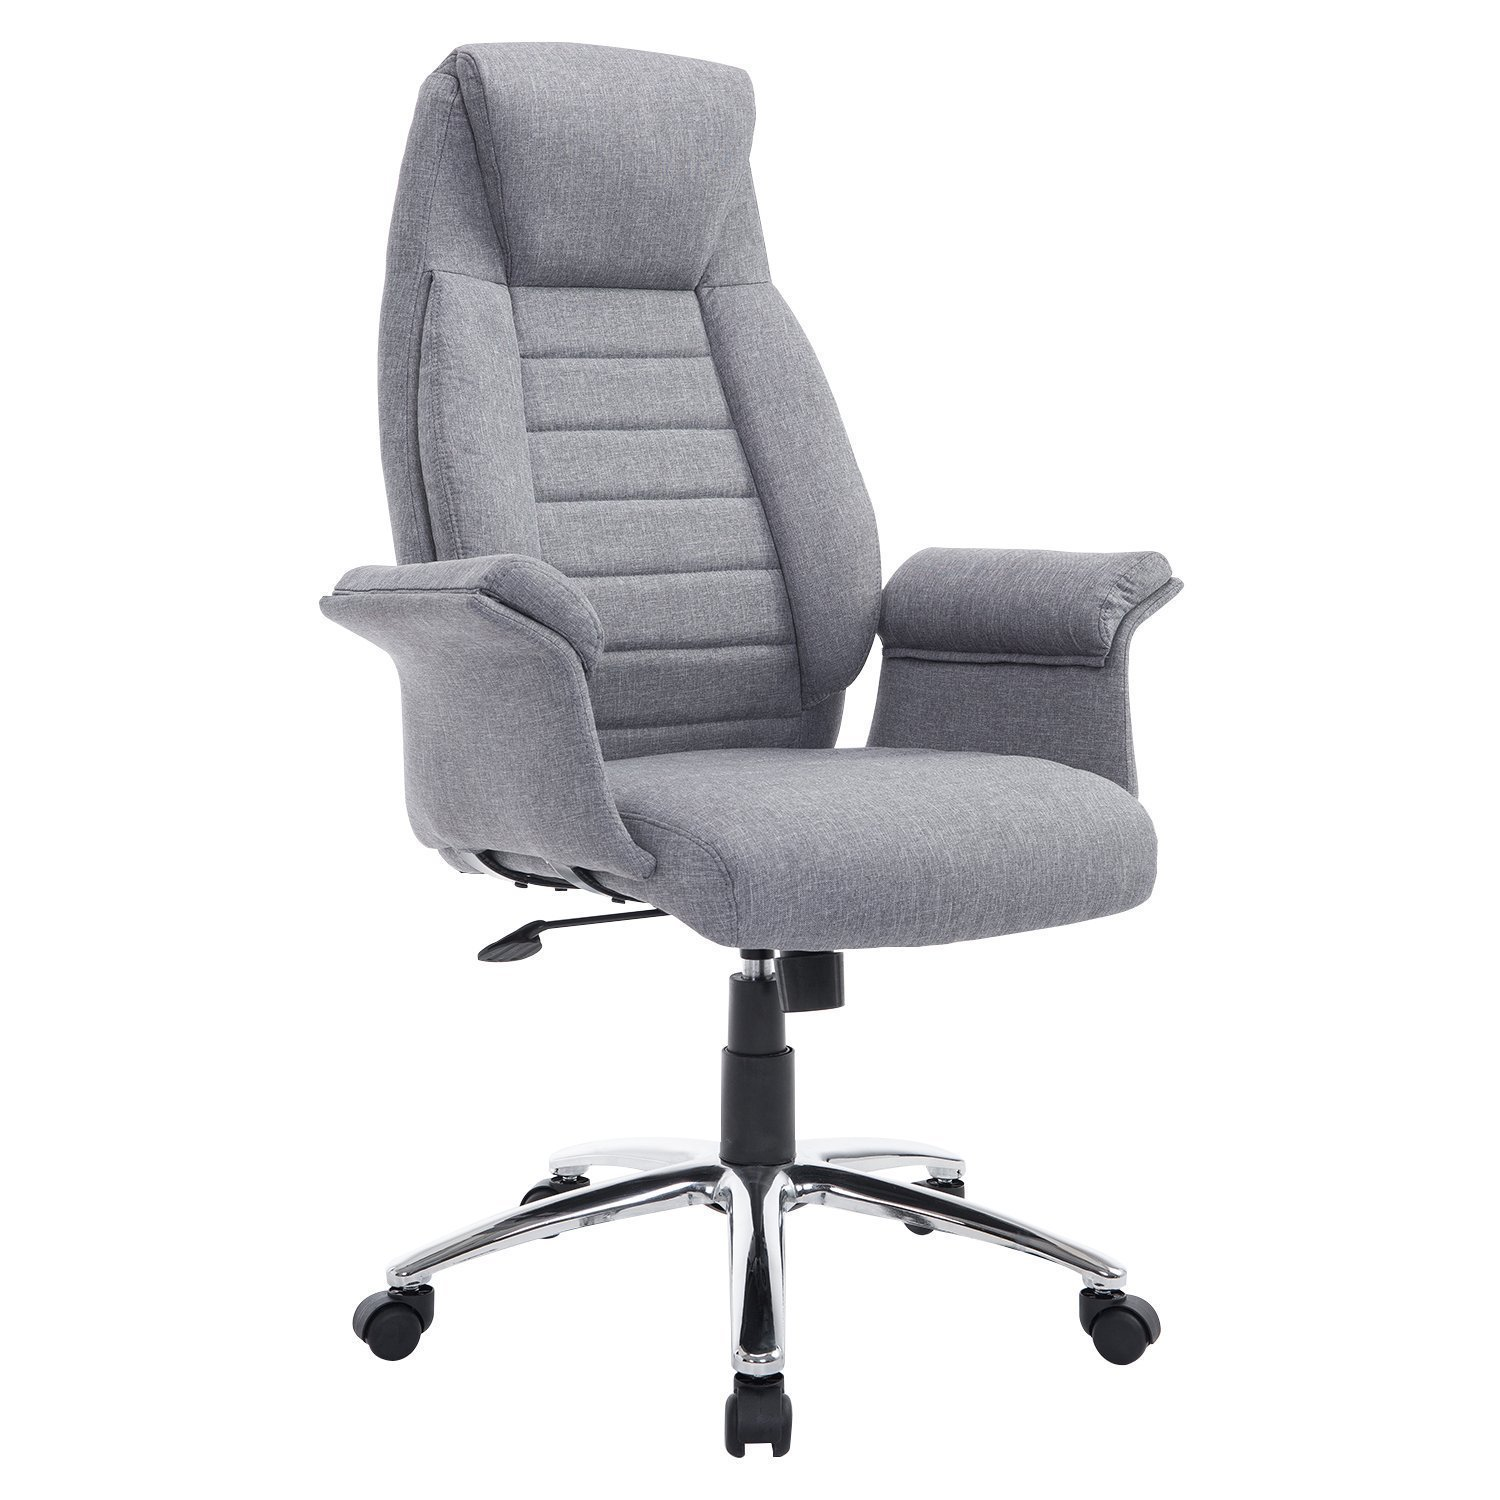 office chair adjustments backyard tables and chairs homcom high back fabric executive home